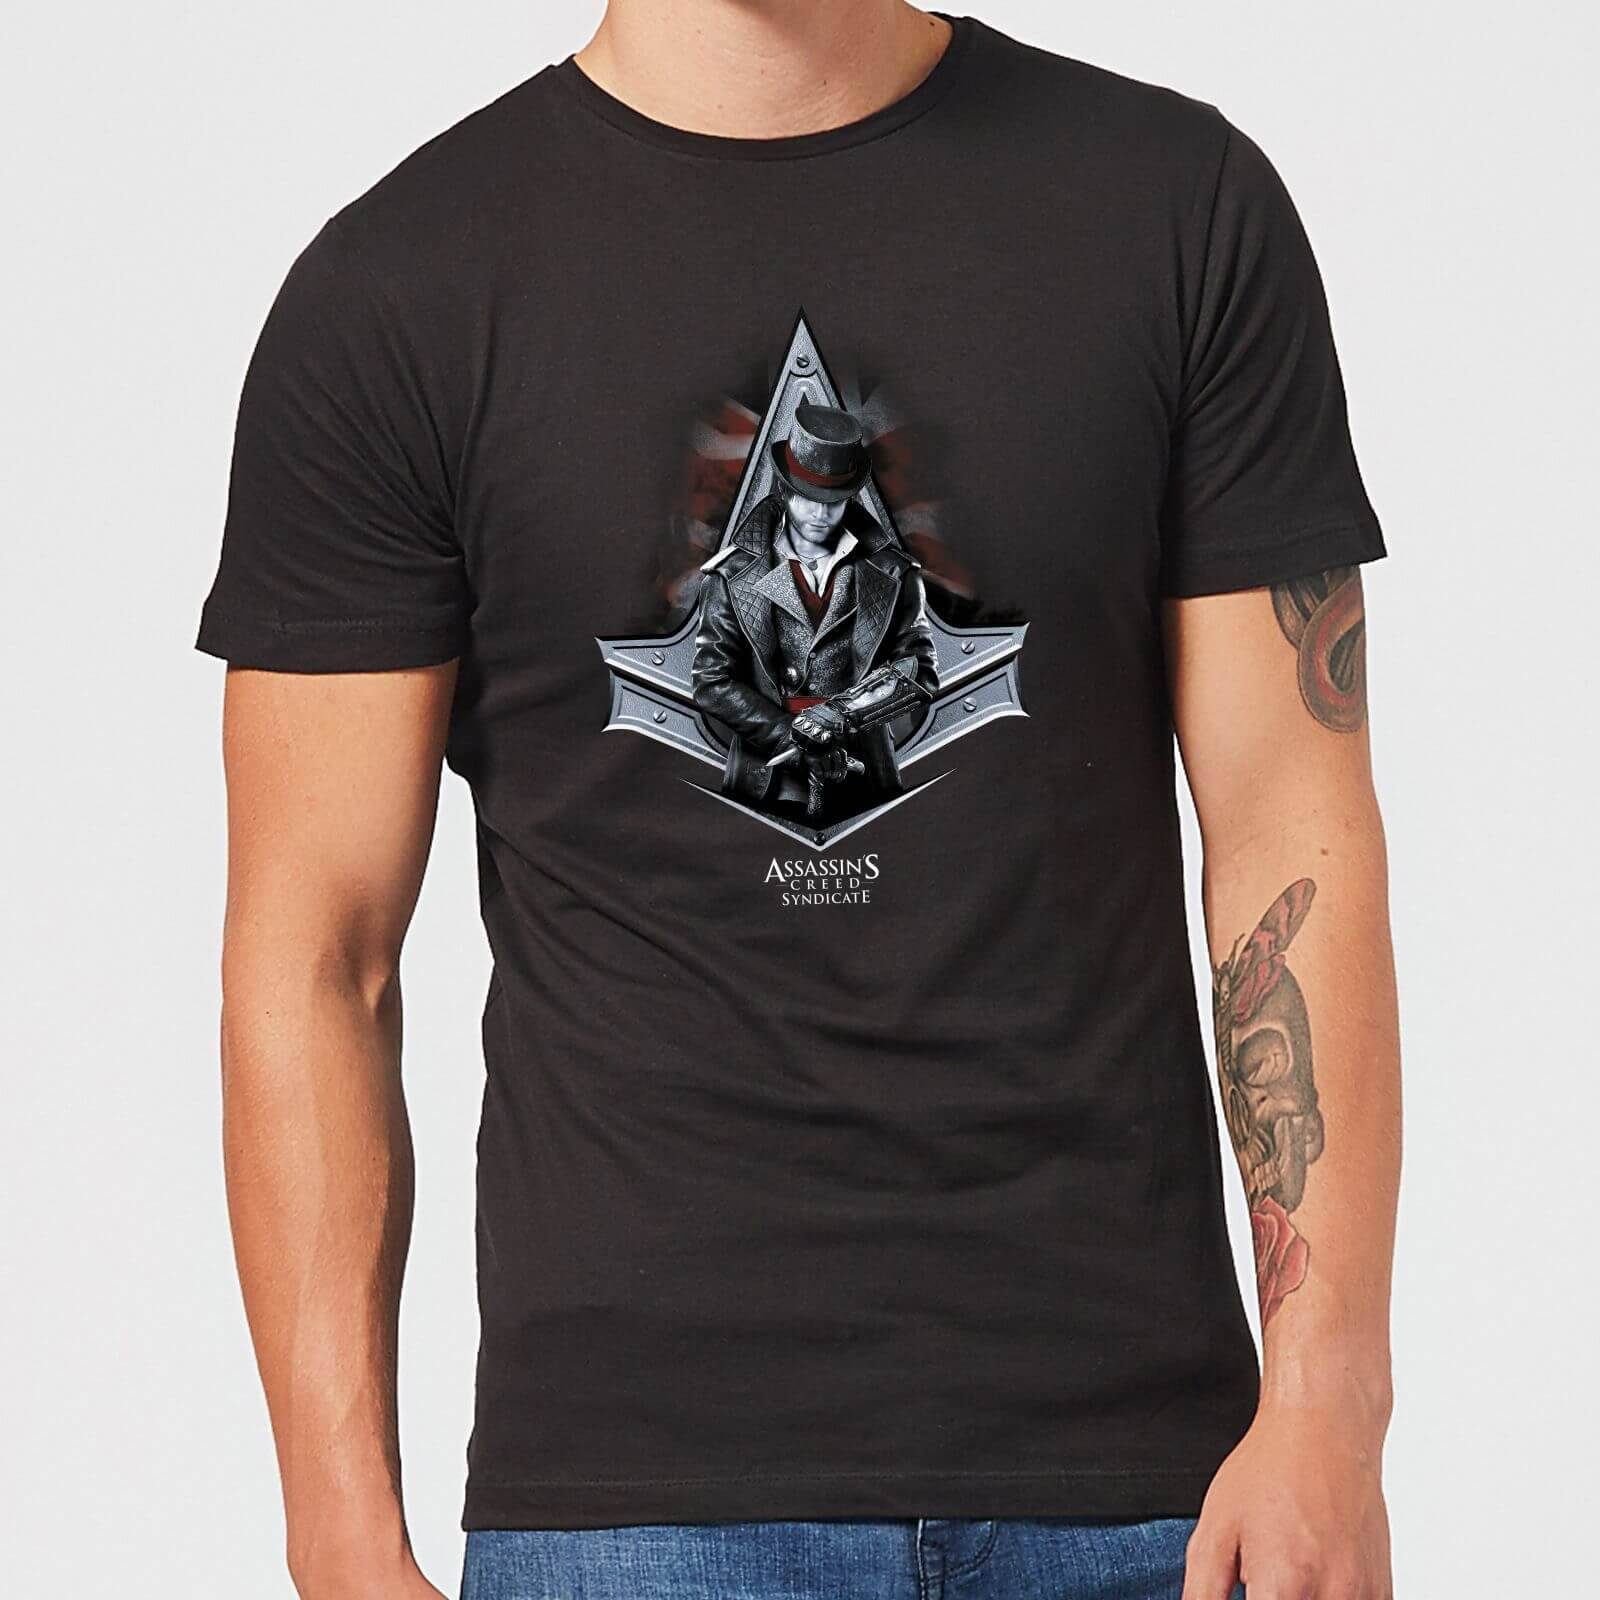 Assassin's Creed T-Shirt Homme Jacob Assassin's Creed Syndicate - Noir - XS - Noir